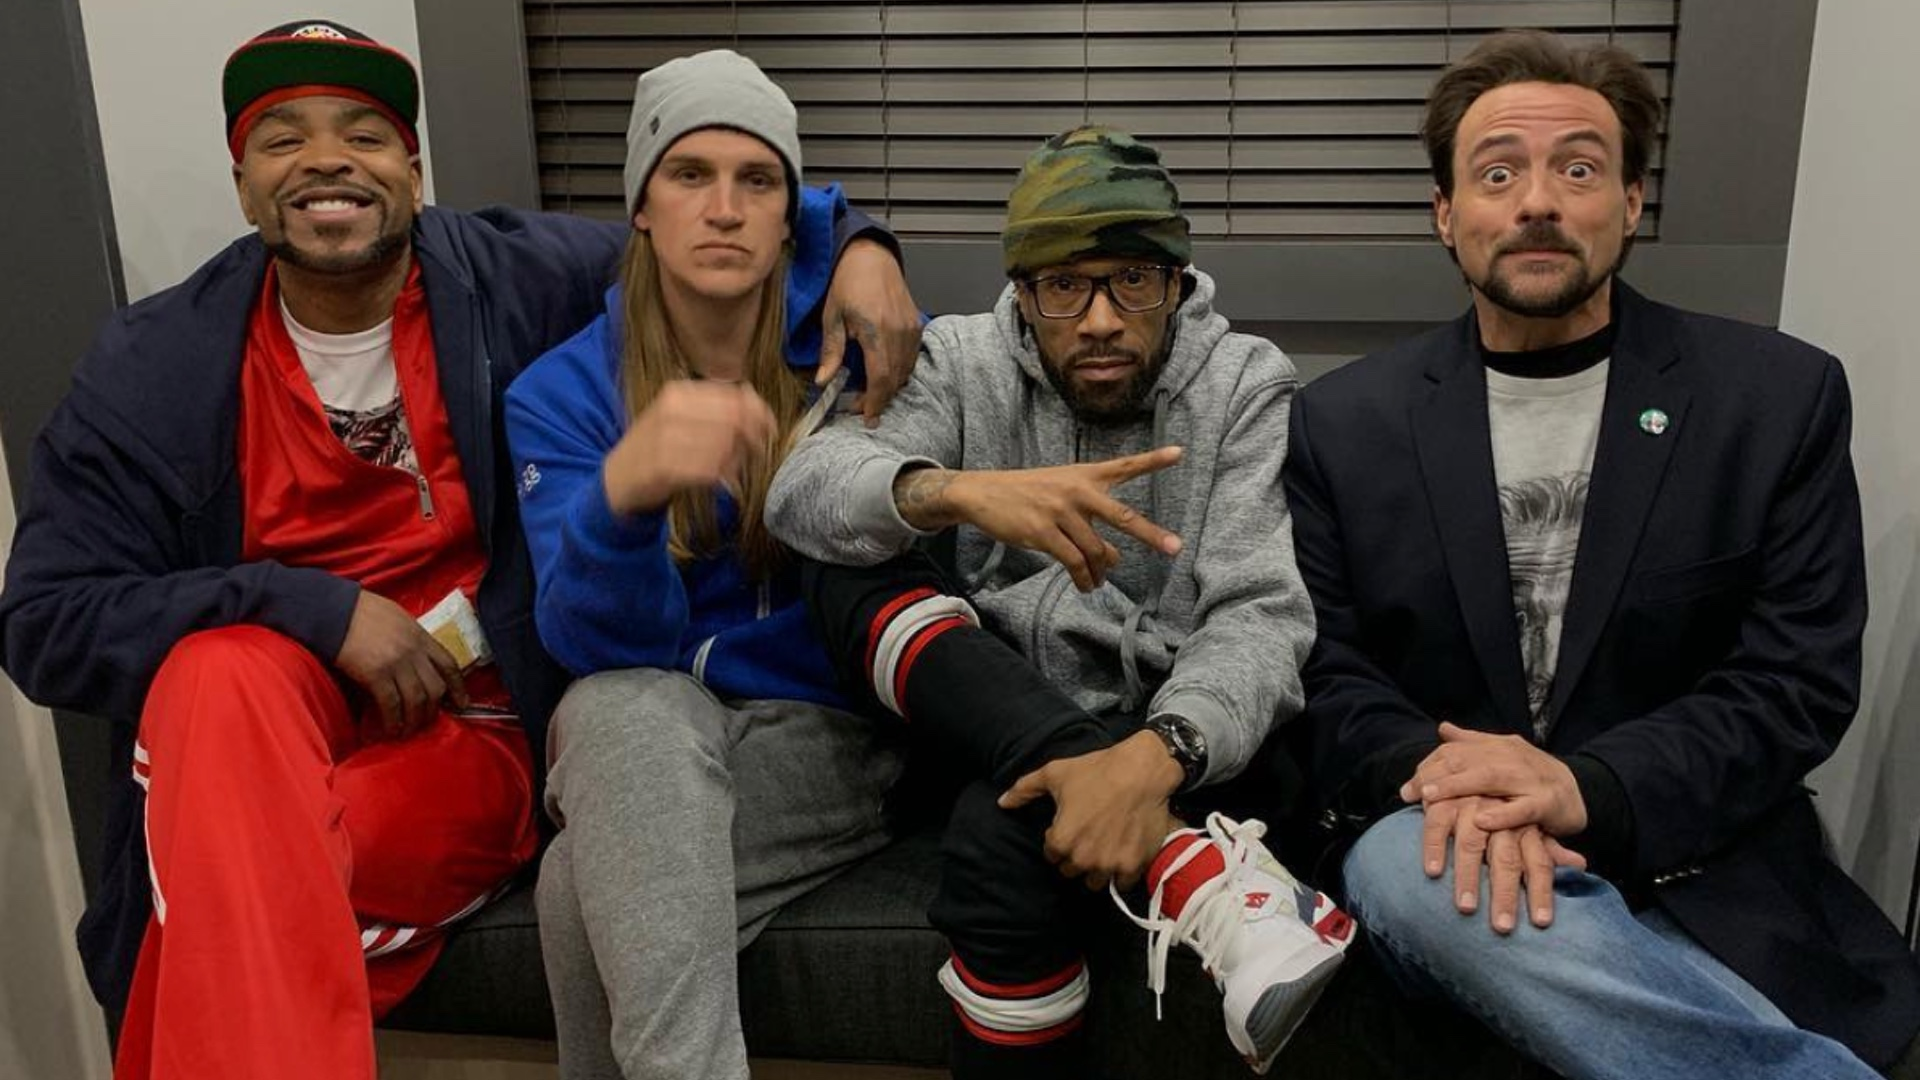 Kevin Smith Casts Method Man And Redman In Jay And Silent Bob